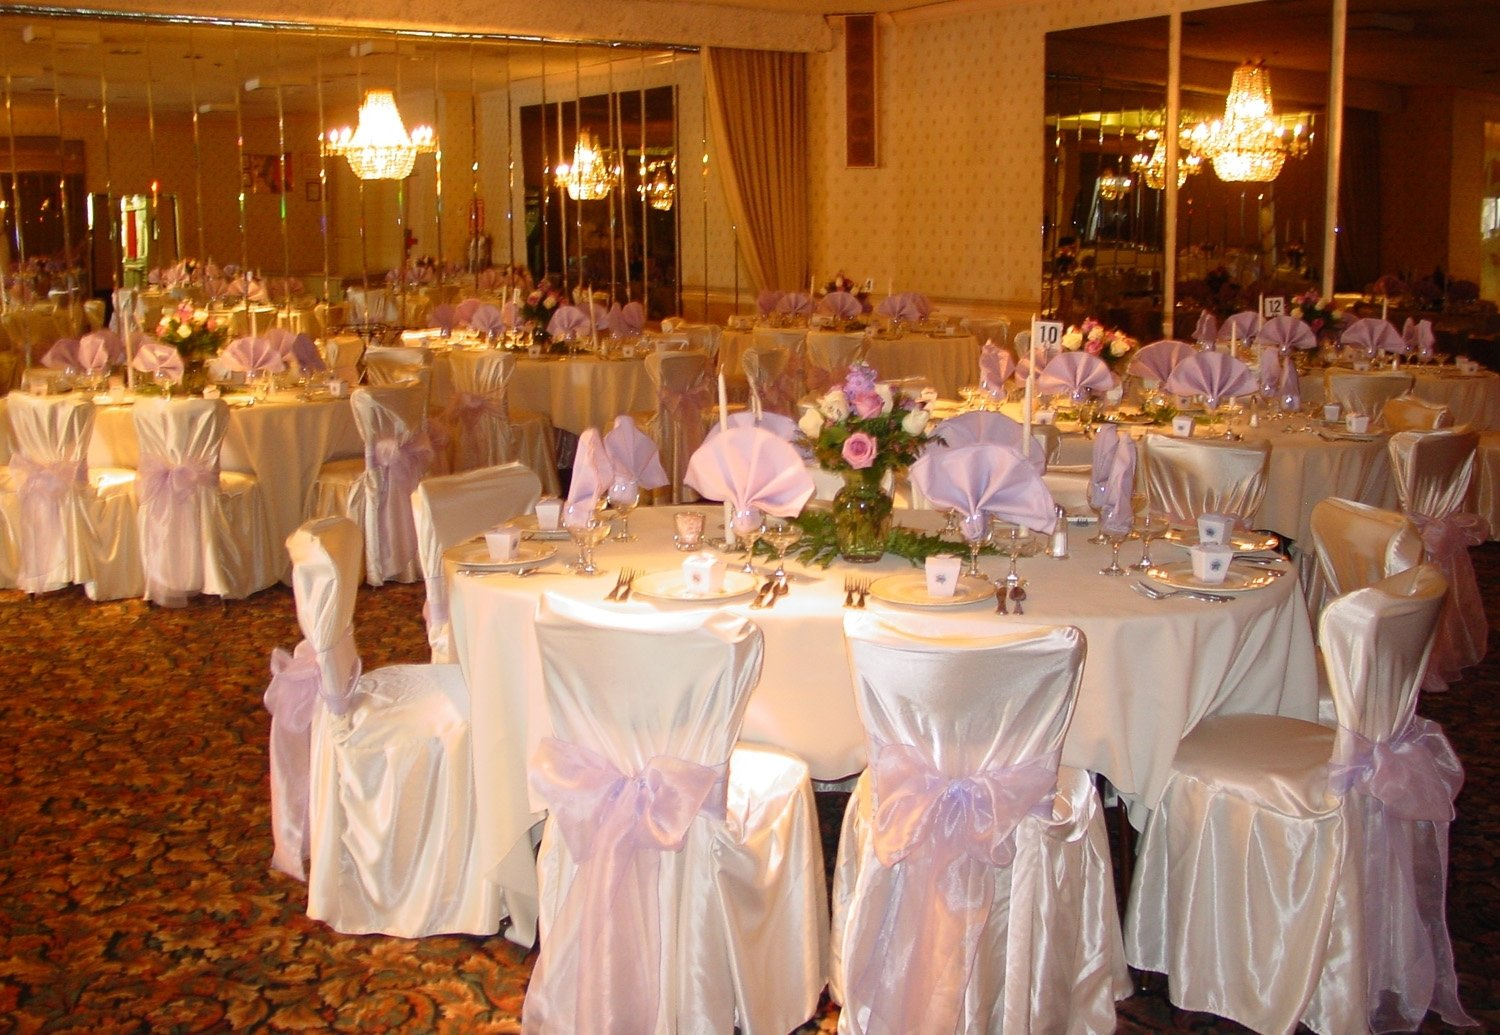 10 Stunning Pink And White Wedding Ideas decorating ideas casual picture of accessories for white and pink 2021